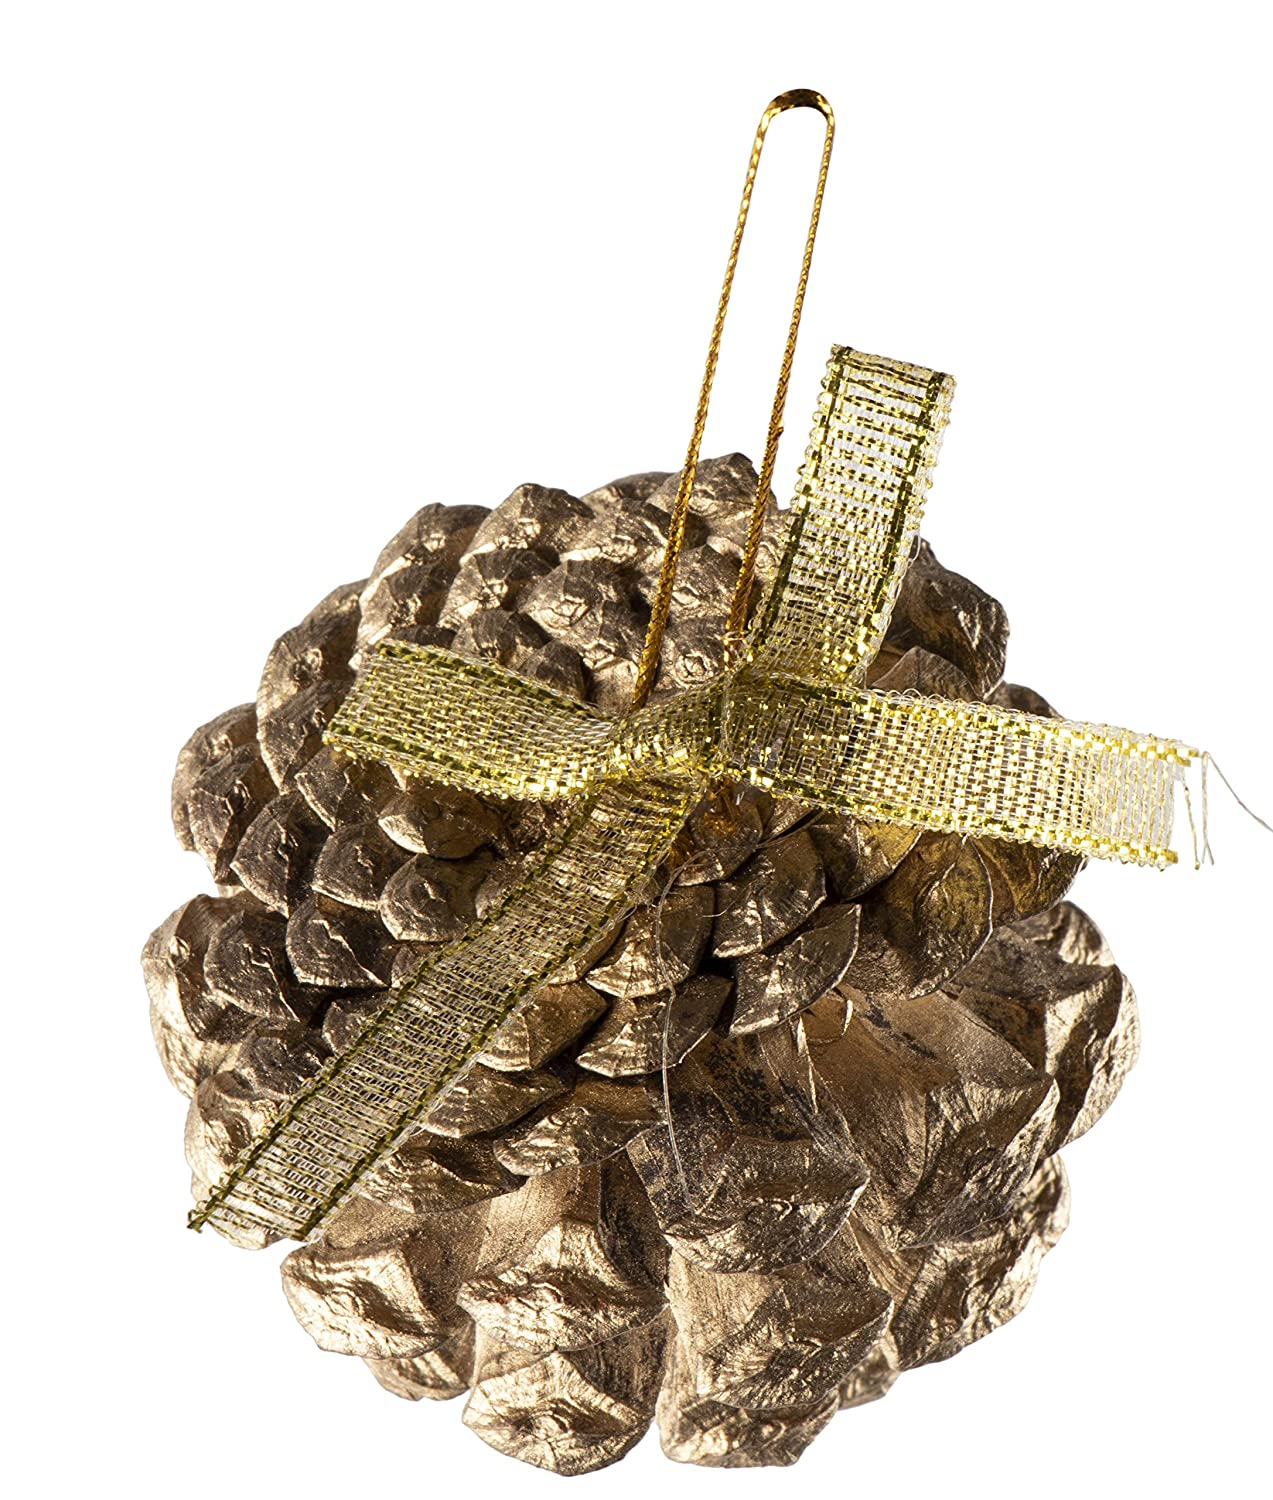 Juvale Mini Pine Cone Ornaments Gold Glitter Rustic Design Decor with String 2.2-Inch Diameter 24-Pack Christmas Tree Pinecone Ornaments Small Winter Holiday Festive Hanging Decoration